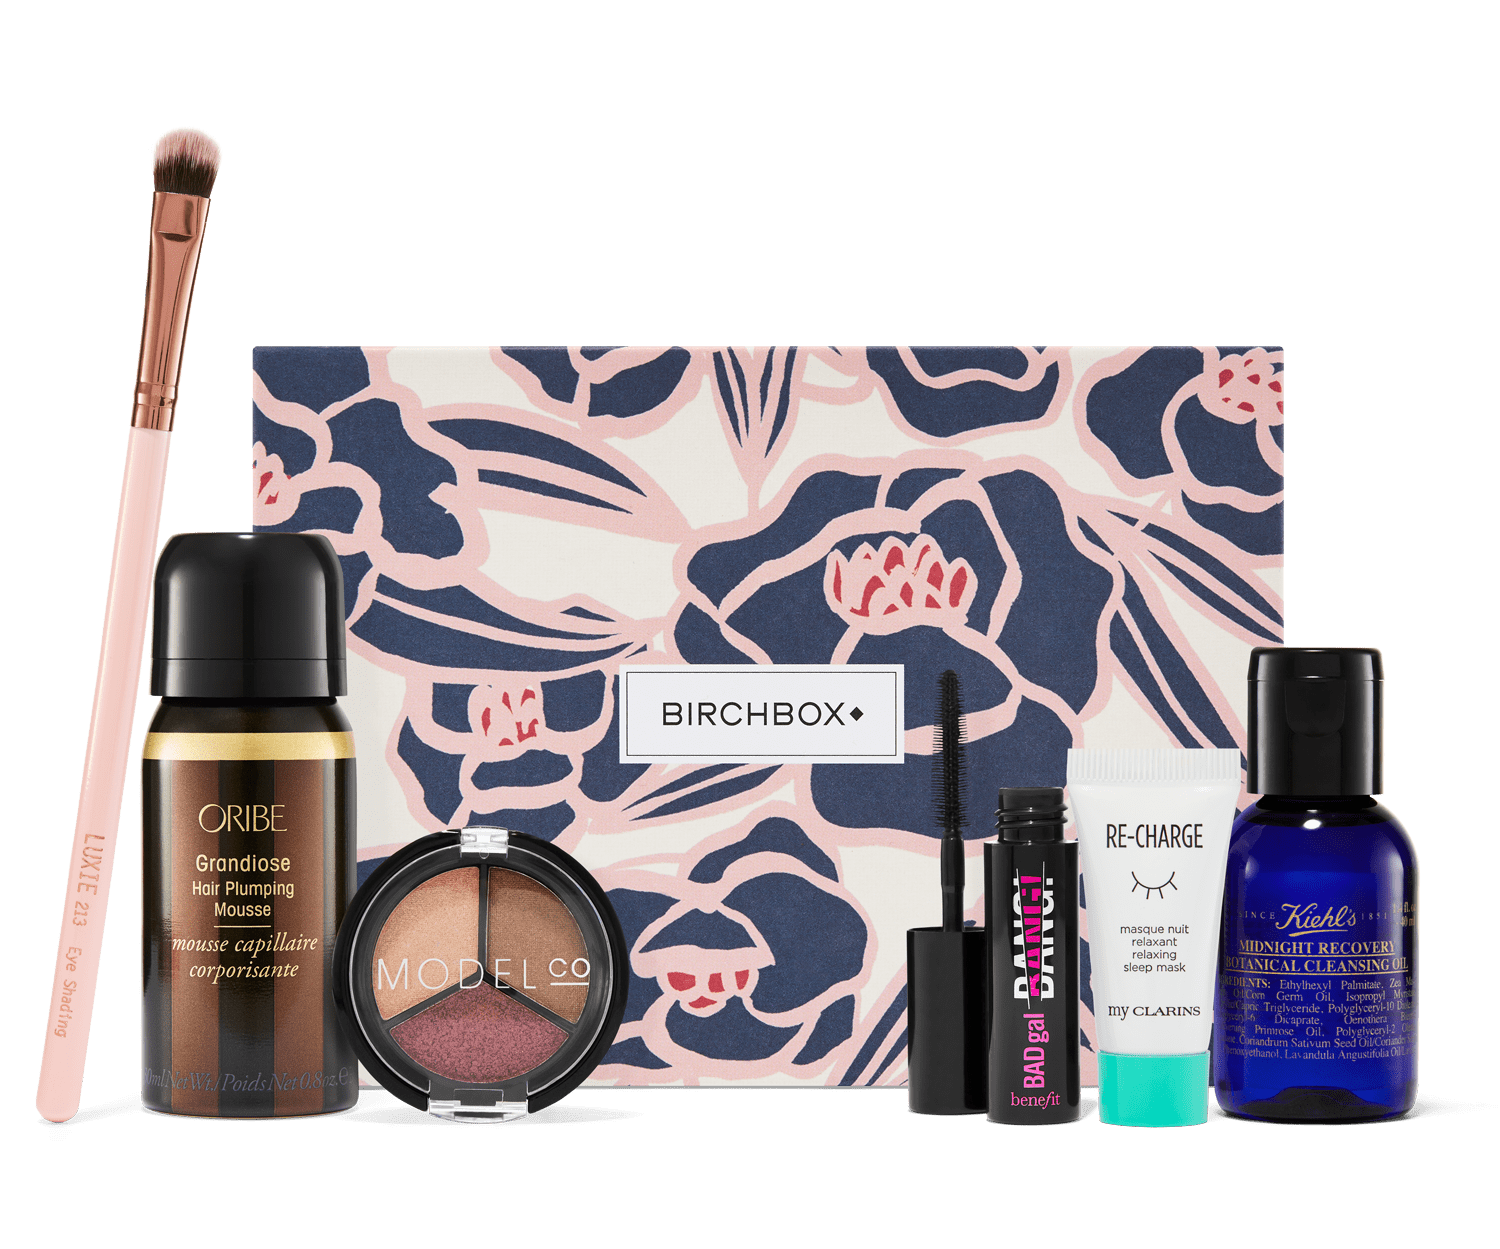 Birchbox March 2019 Curated Box Available Now in the Shop!